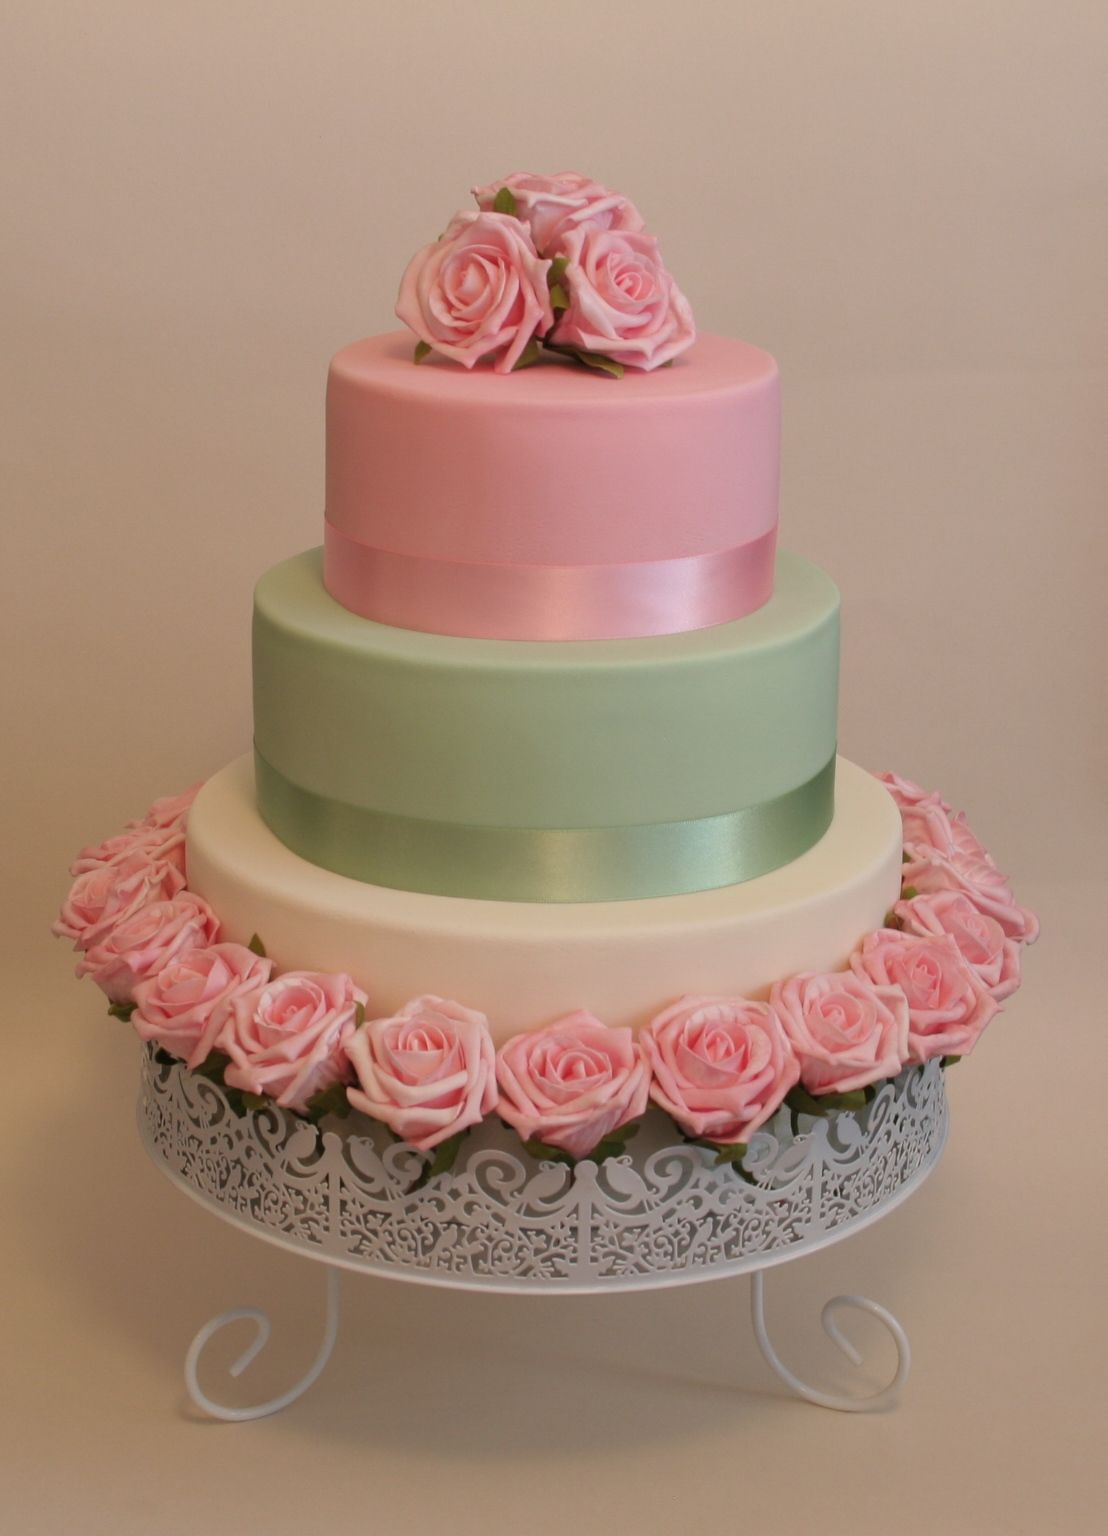 Pastel rose wedding cake - 3 tier vwedding cake covered in fondant ...